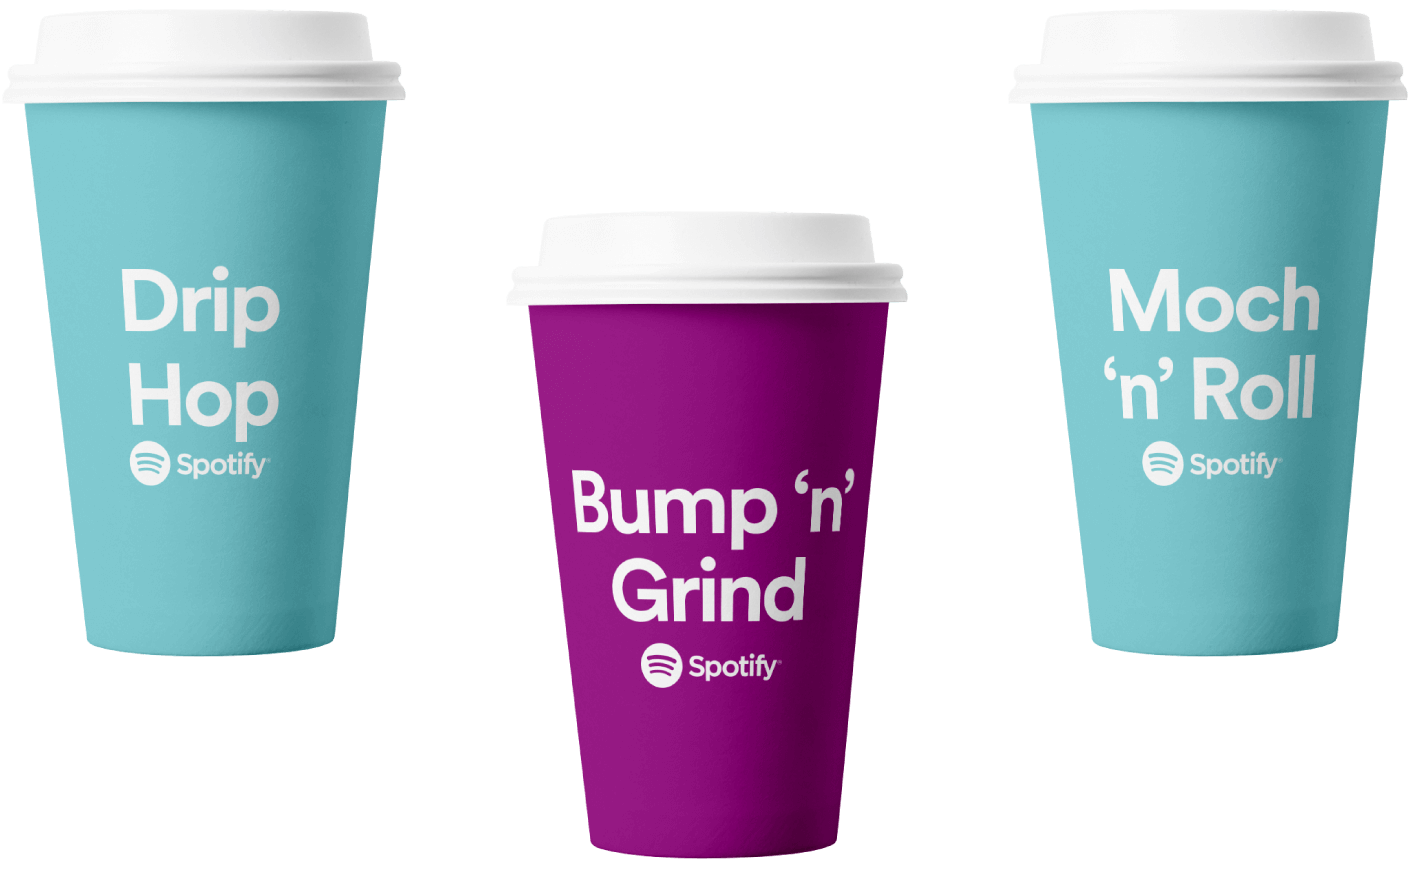 Personalised cups that were used in Spotify campaign